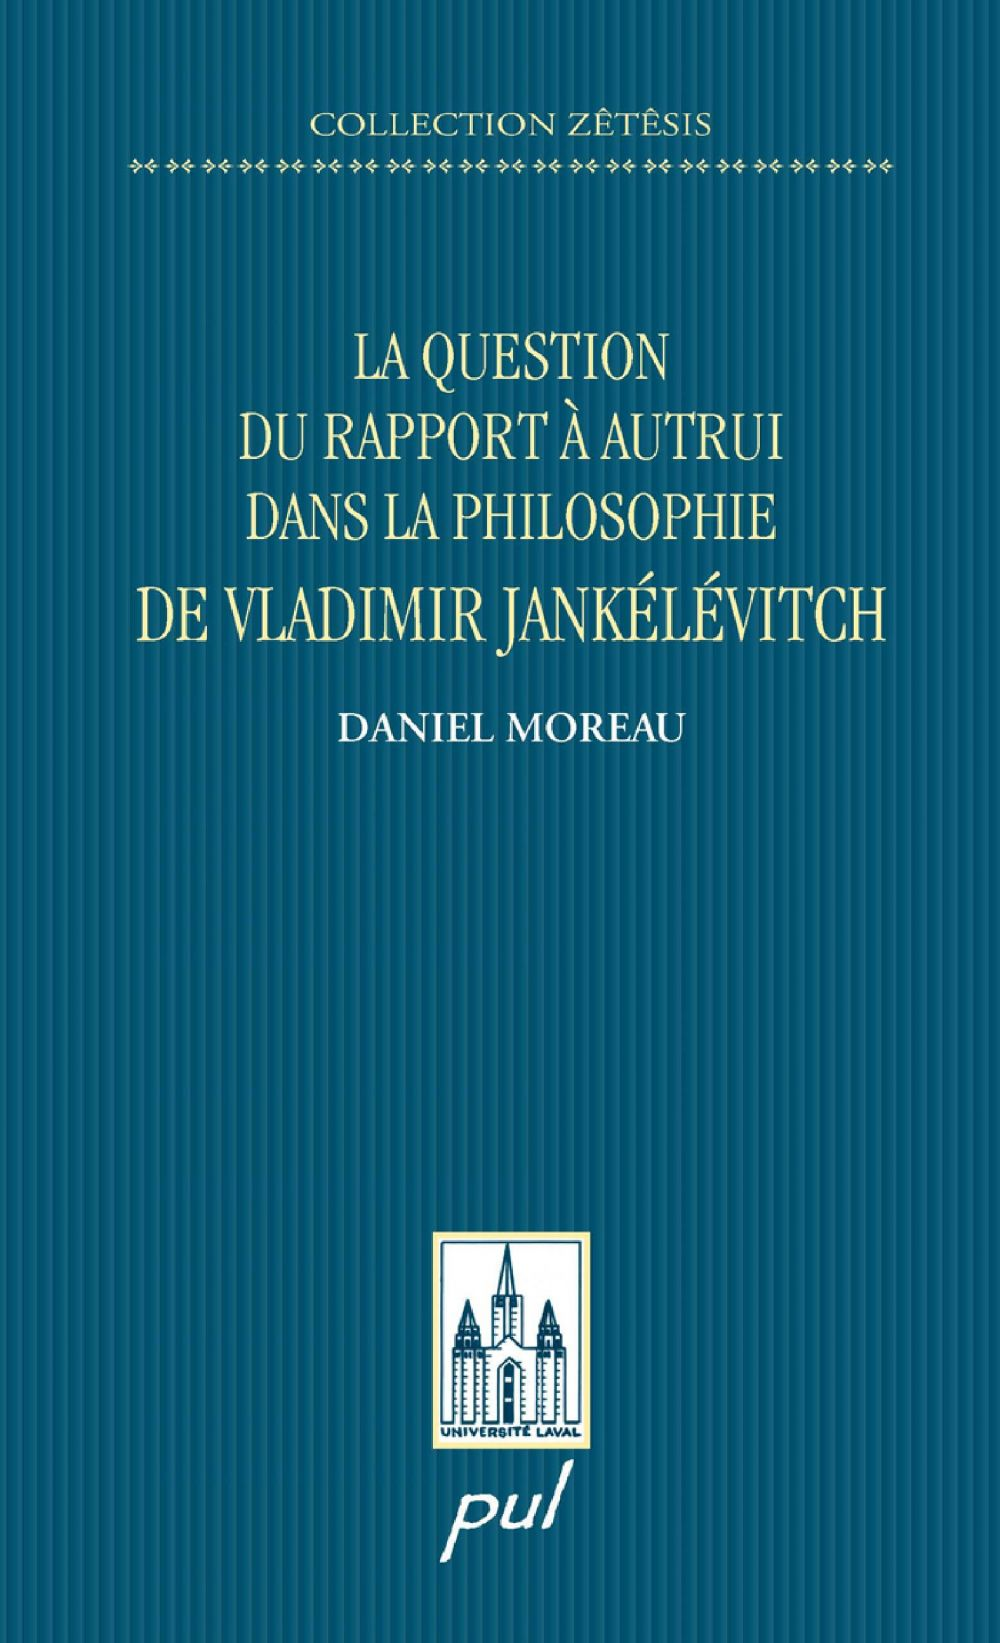 La question du rapport à autrui dans la philosophie...